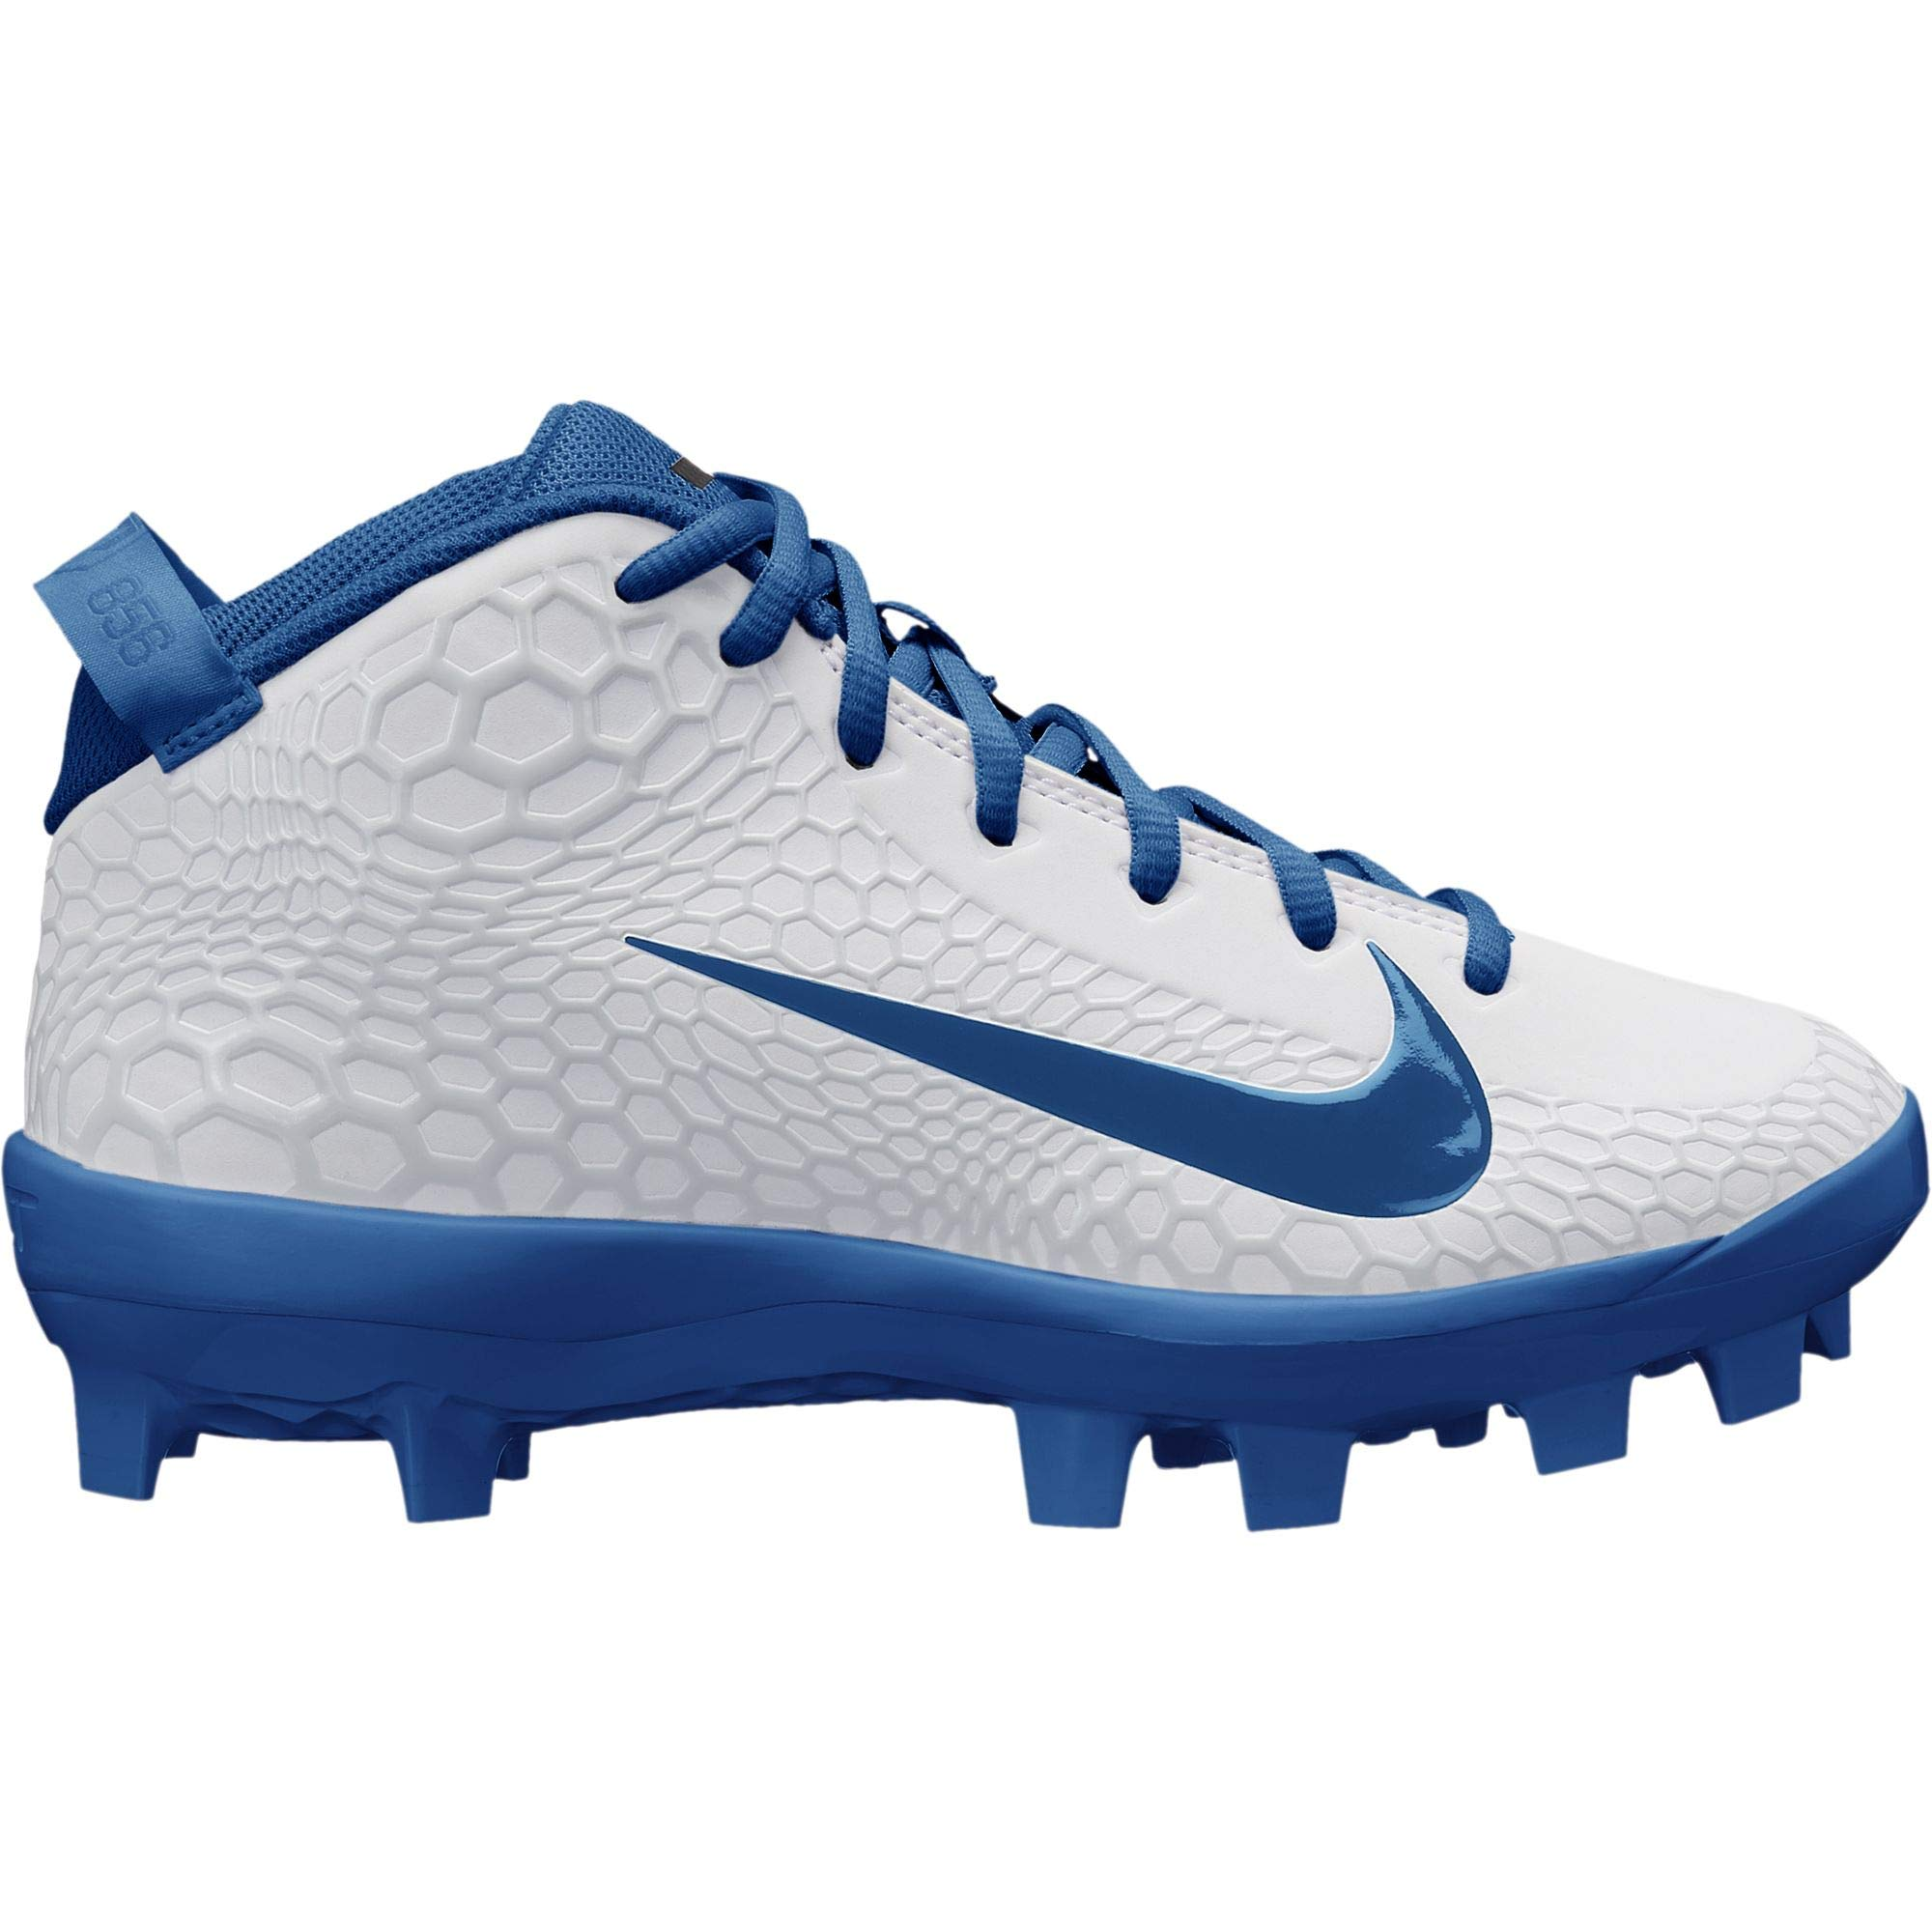 Nike Kids Force Trout 5 Pro MCS Baseball Cleat White/Gym Blue Size 1 M US by Nike